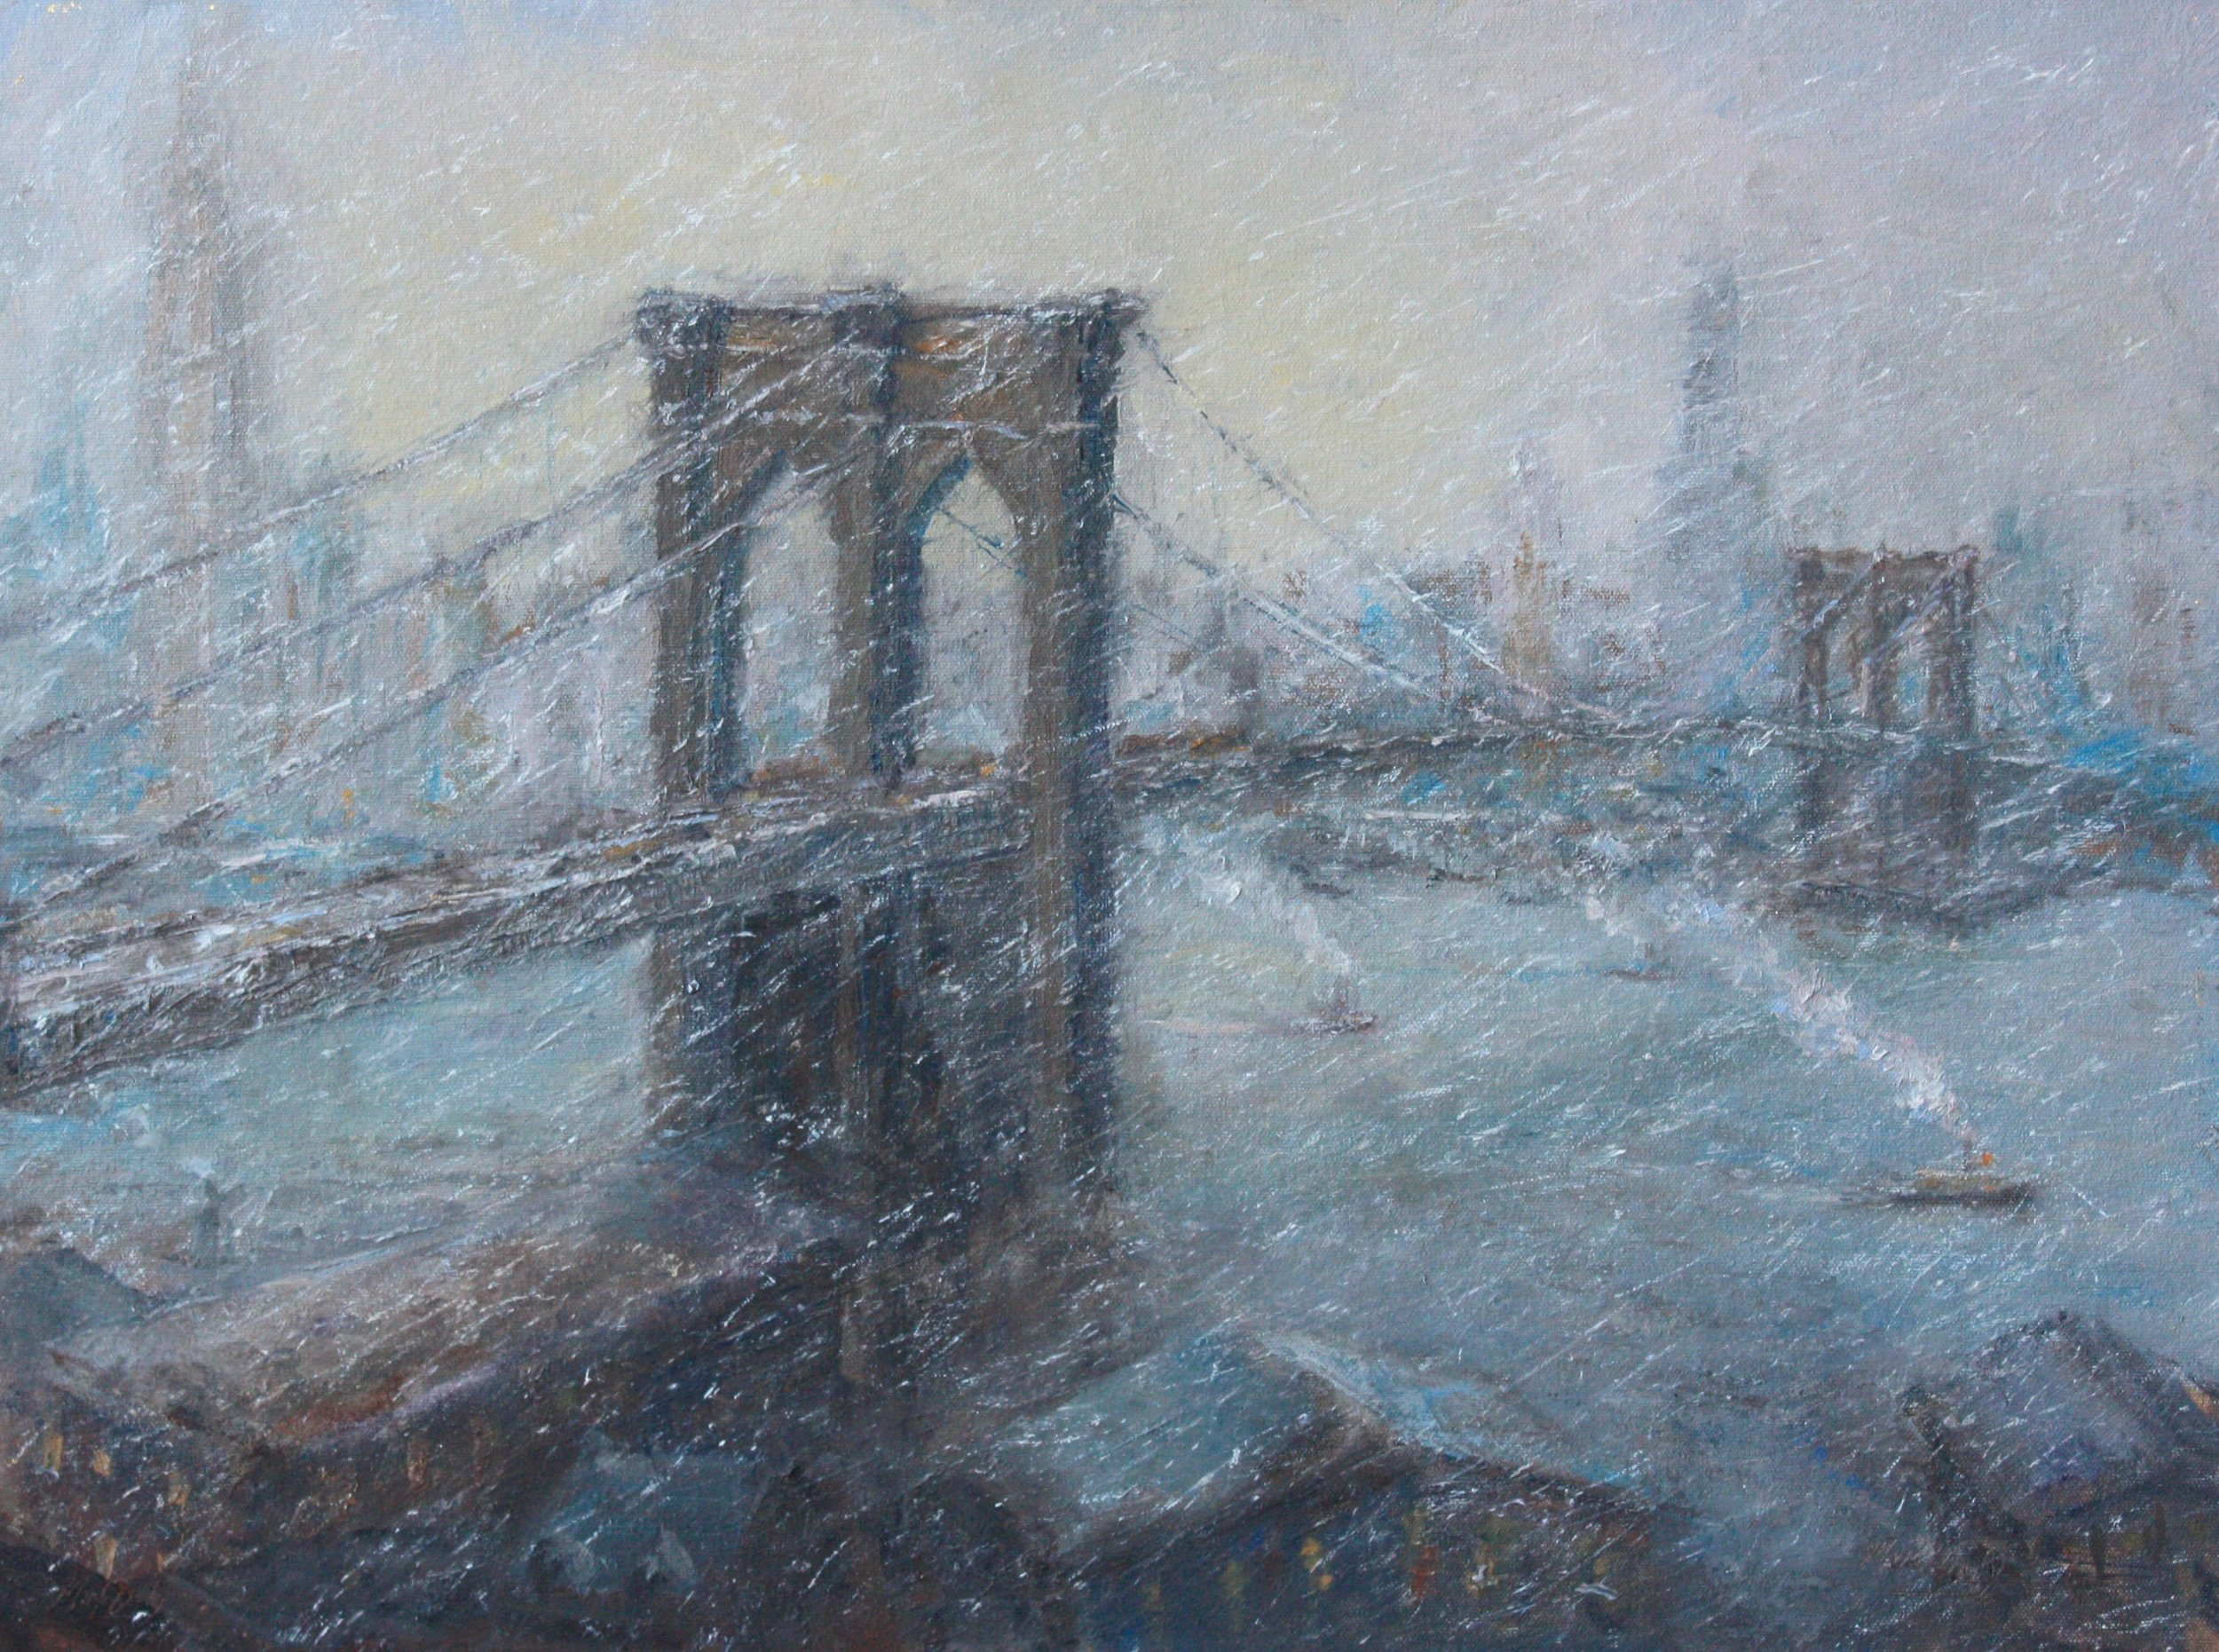 Mark Daly's The Great Bridge In Winter, Oil, 18 x 24. Available at Rehs Galleries.